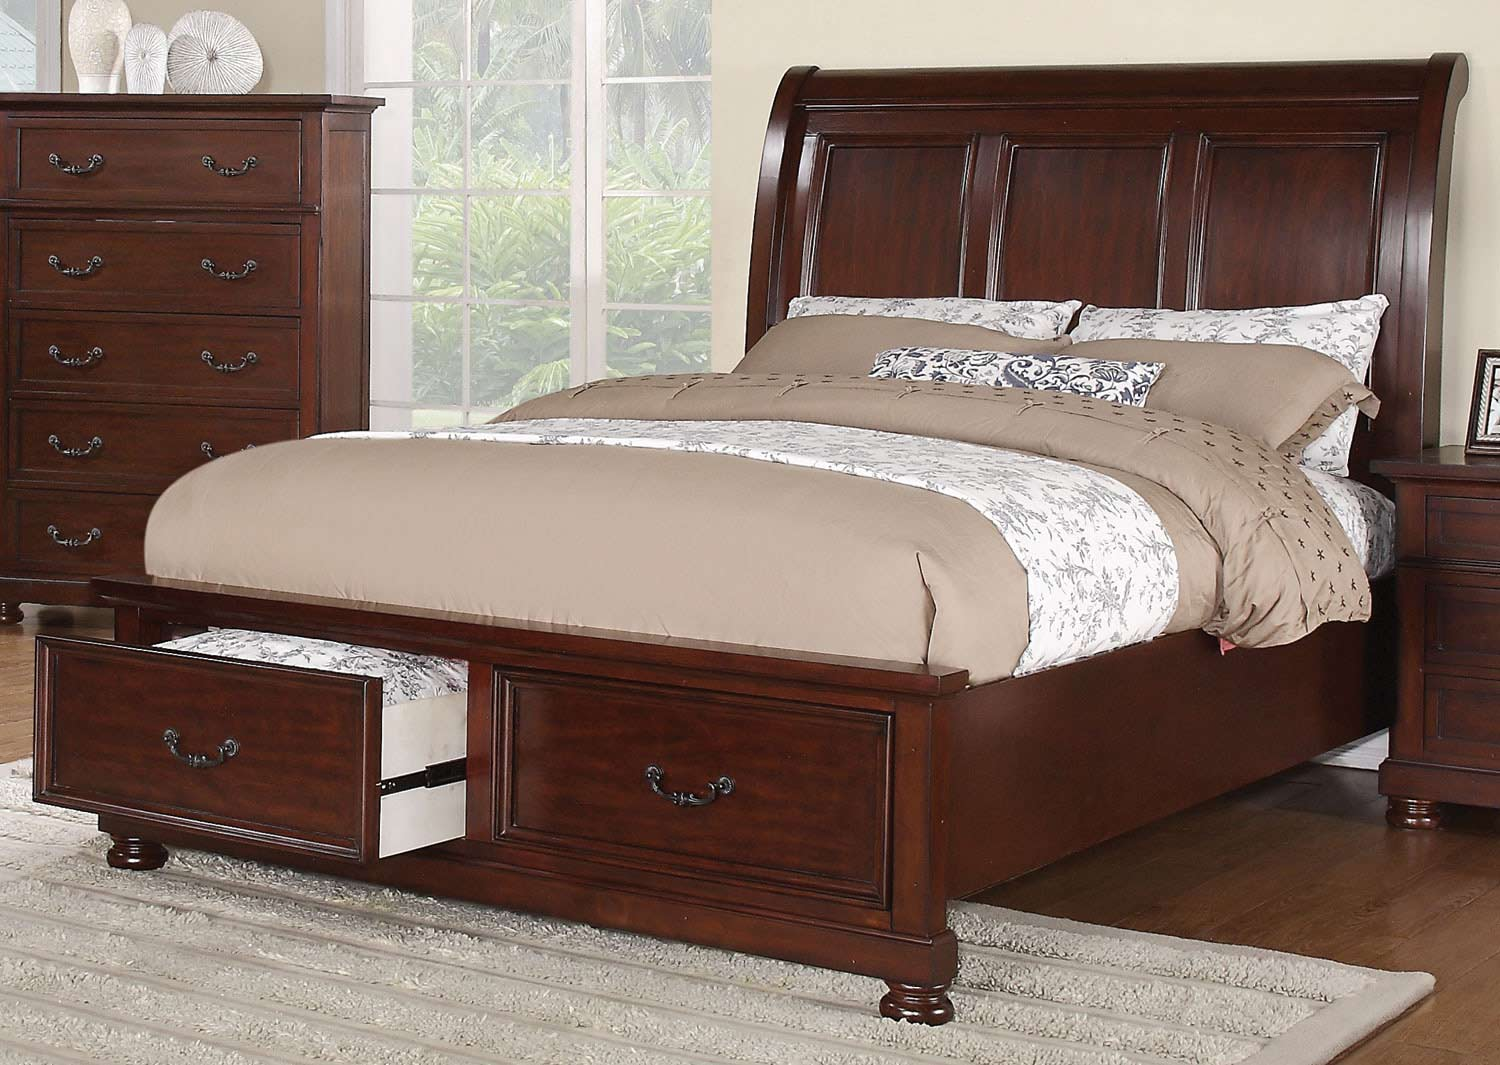 Coaster Hannah Bed - Dark Cherry